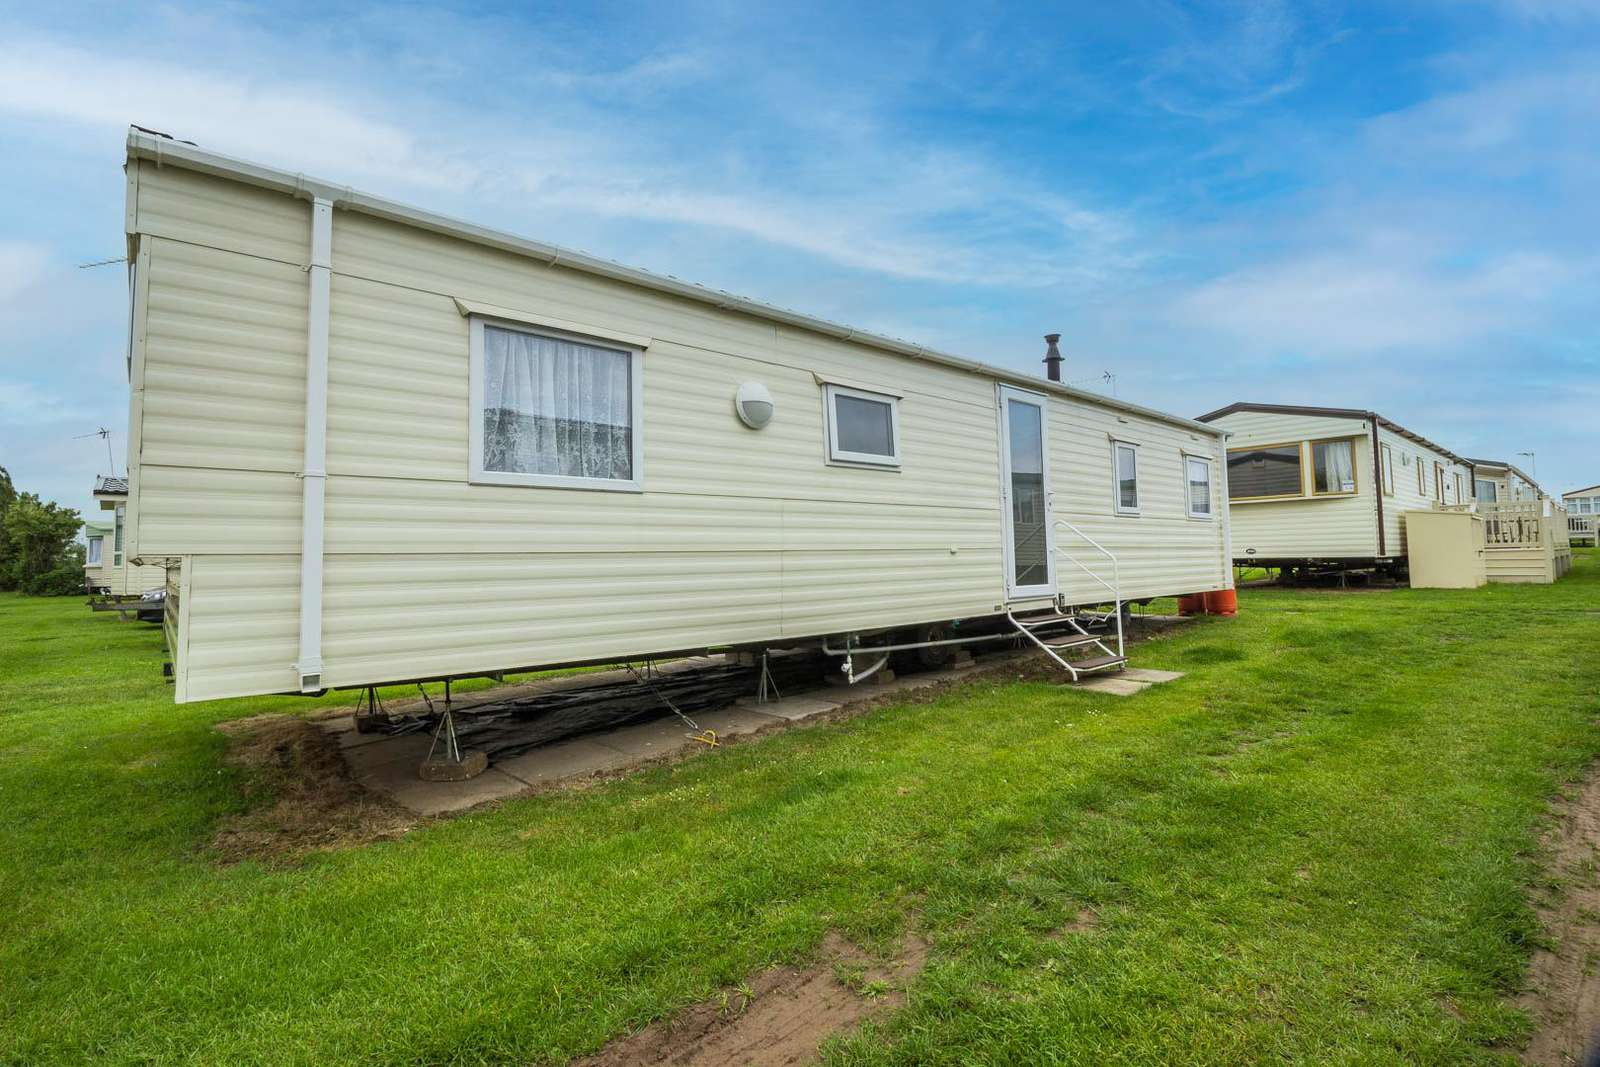 50013F – Fulmar area, 3 bed, 8 berth caravan with C/H and D/G. Ruby rated. - property